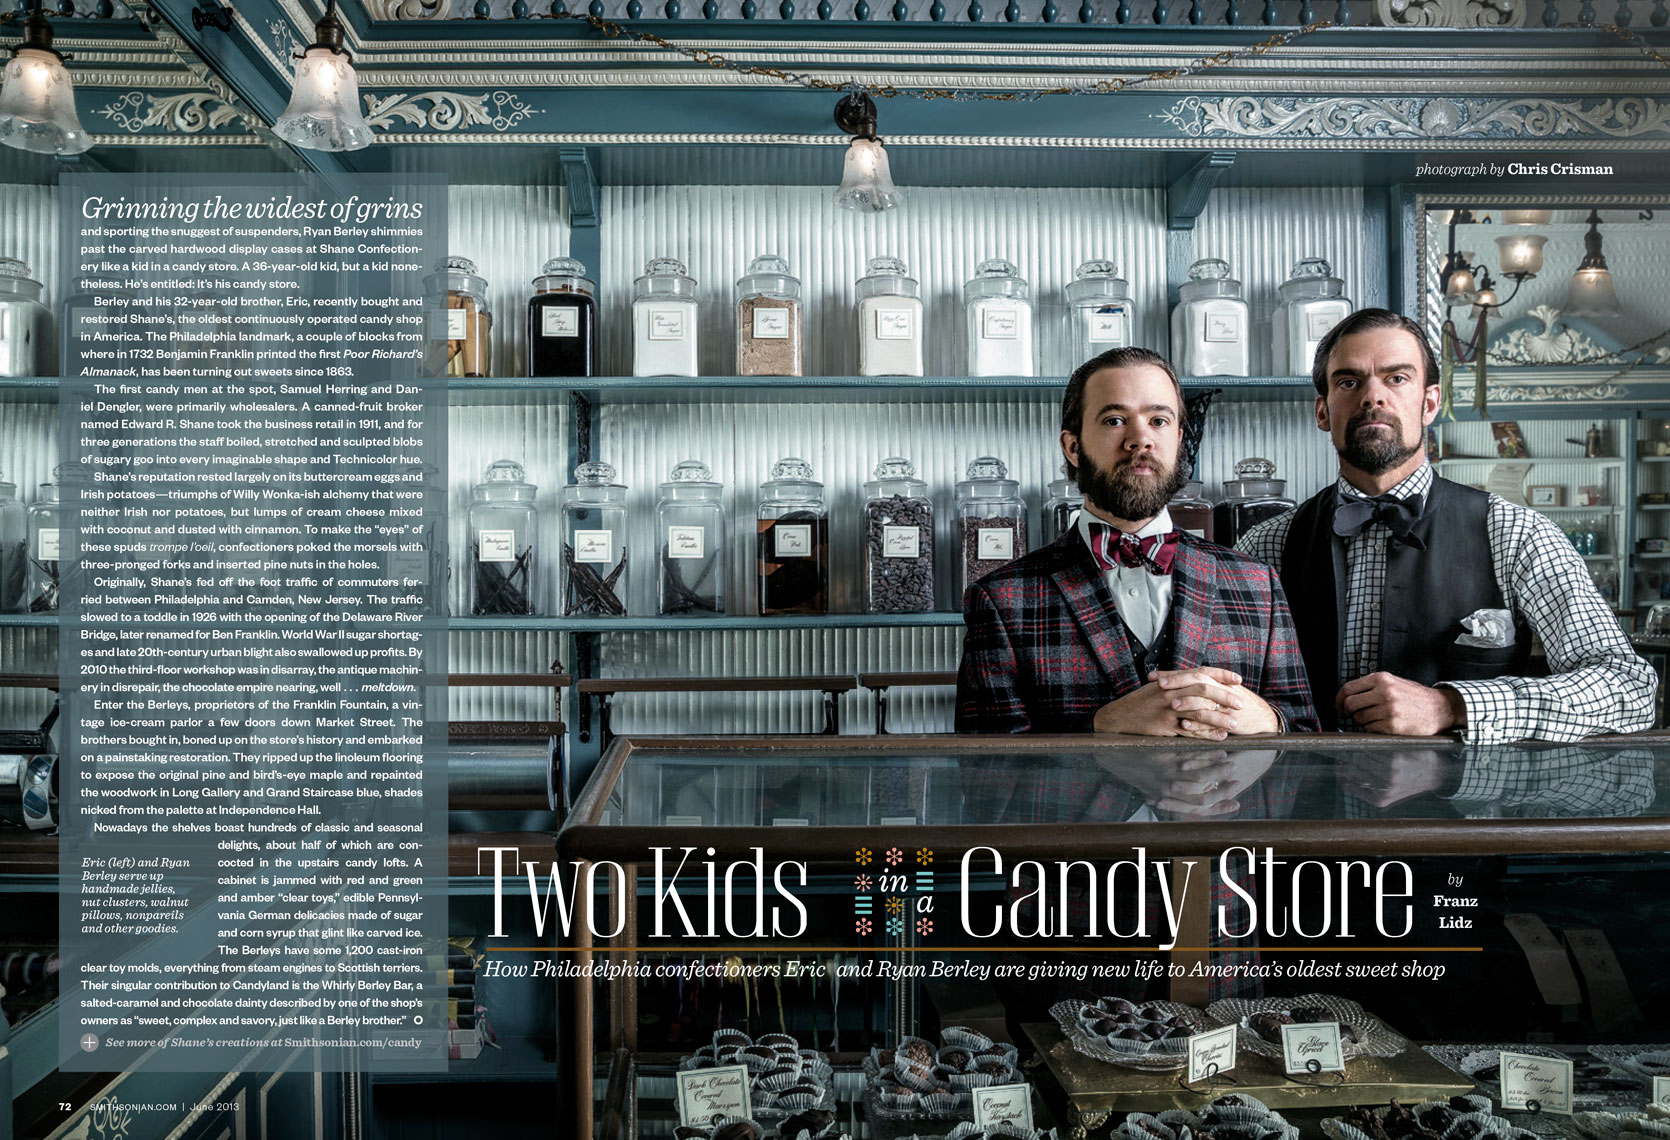 Smithsonian Magazine: Two Kids In a Candy Store. September 2013 issue - ERIC and RYAN BERLEY